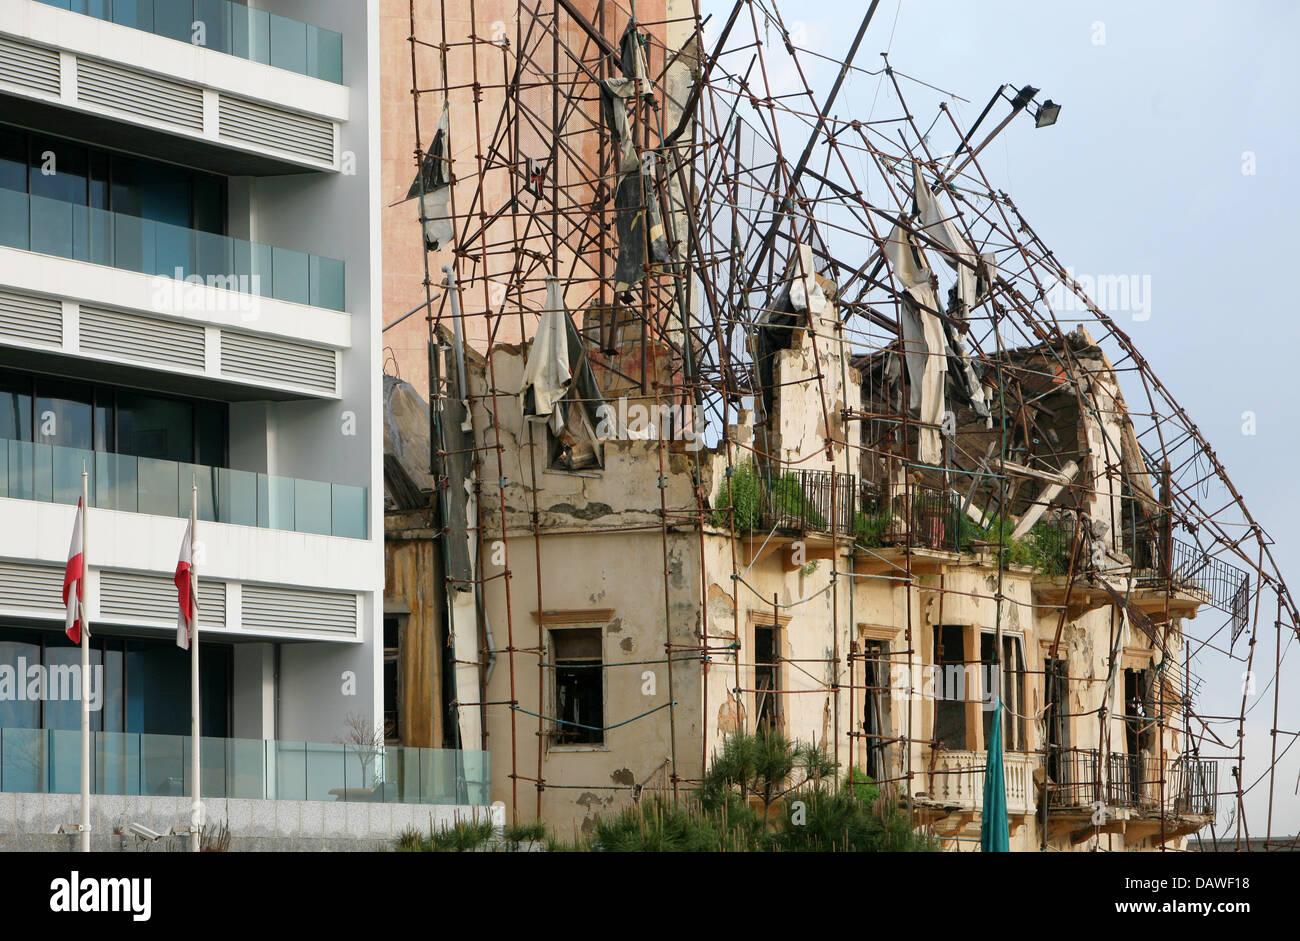 The photo shows war damage on a building in the city centre of Beirut, Lebanon, 2 April 2007. Photo: Roland Holschneider - Stock Image